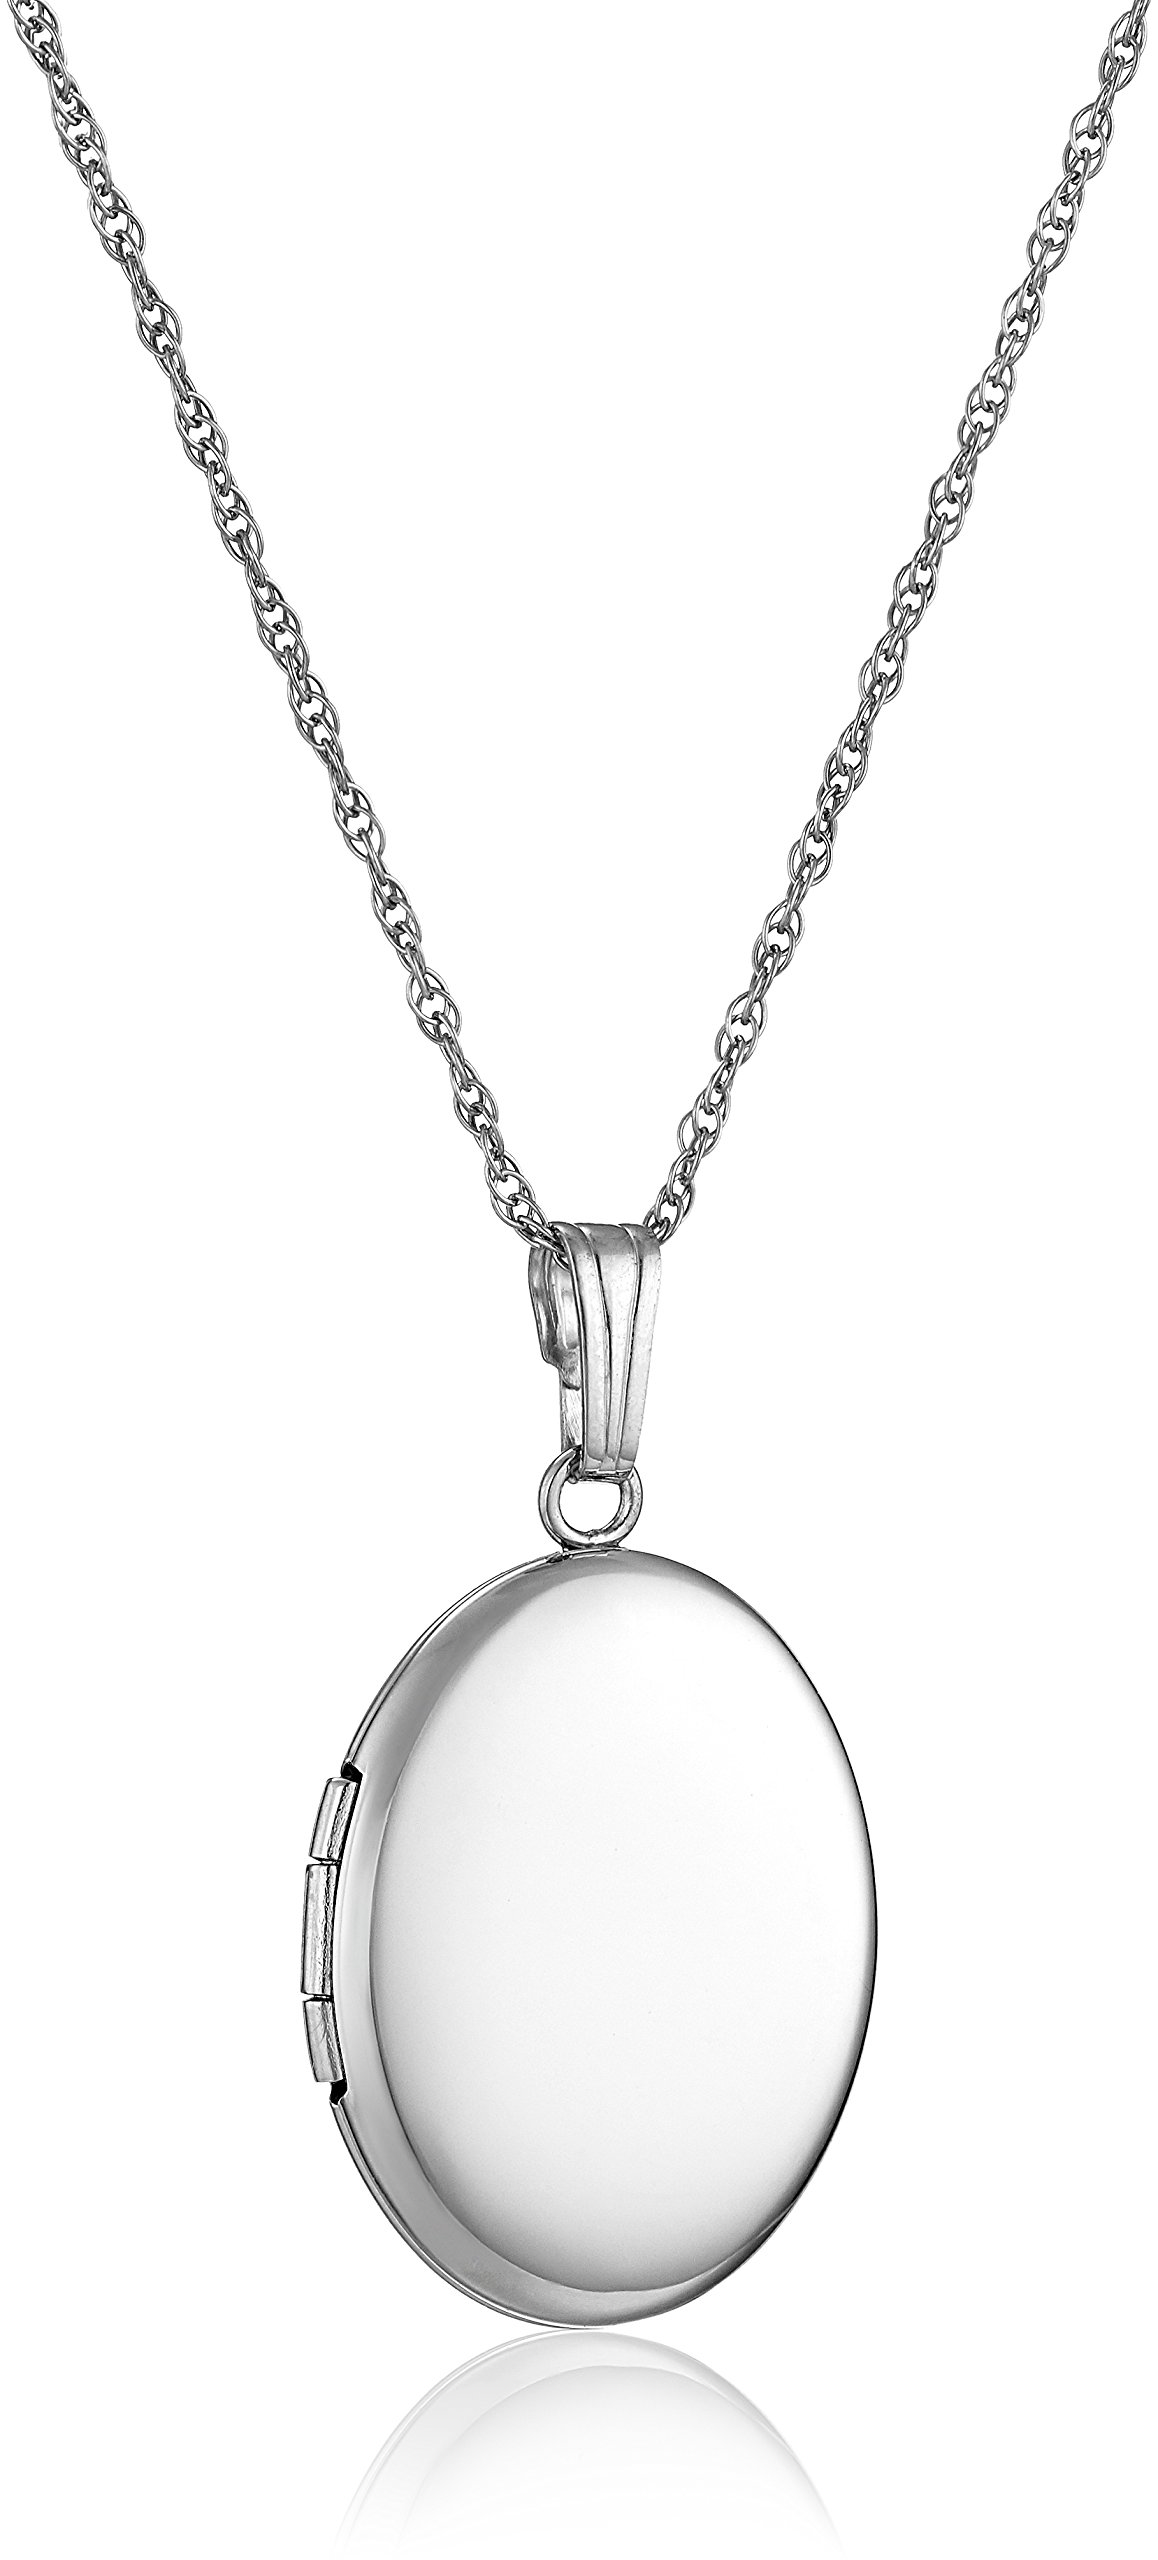 14k White Gold Polished Oval Locket Necklace, 18''